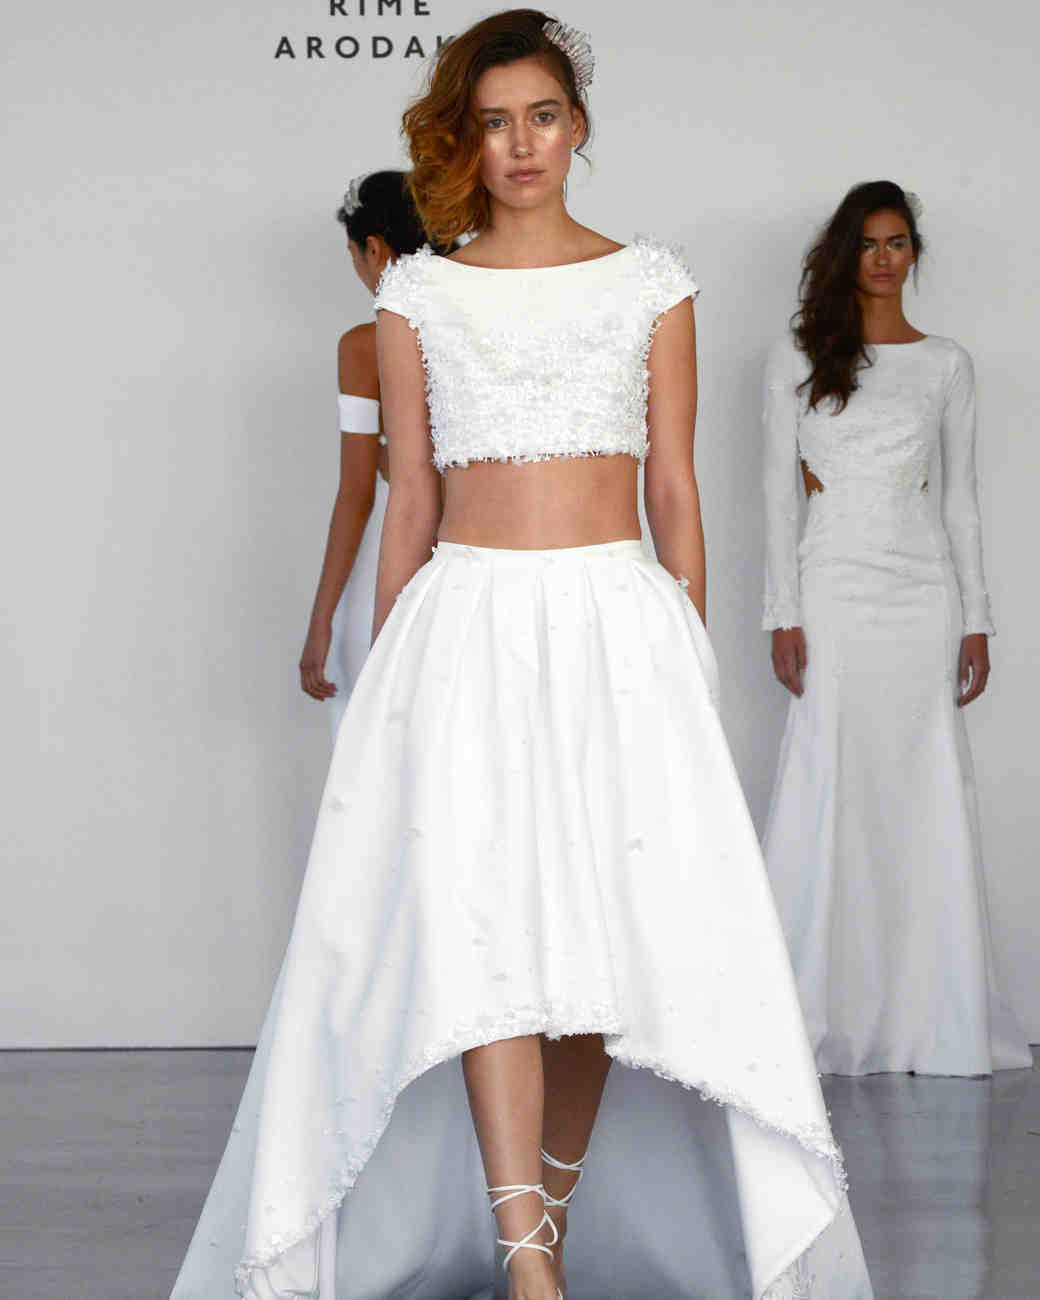 Rime Arodaky wedding dress 37 Fall 2017